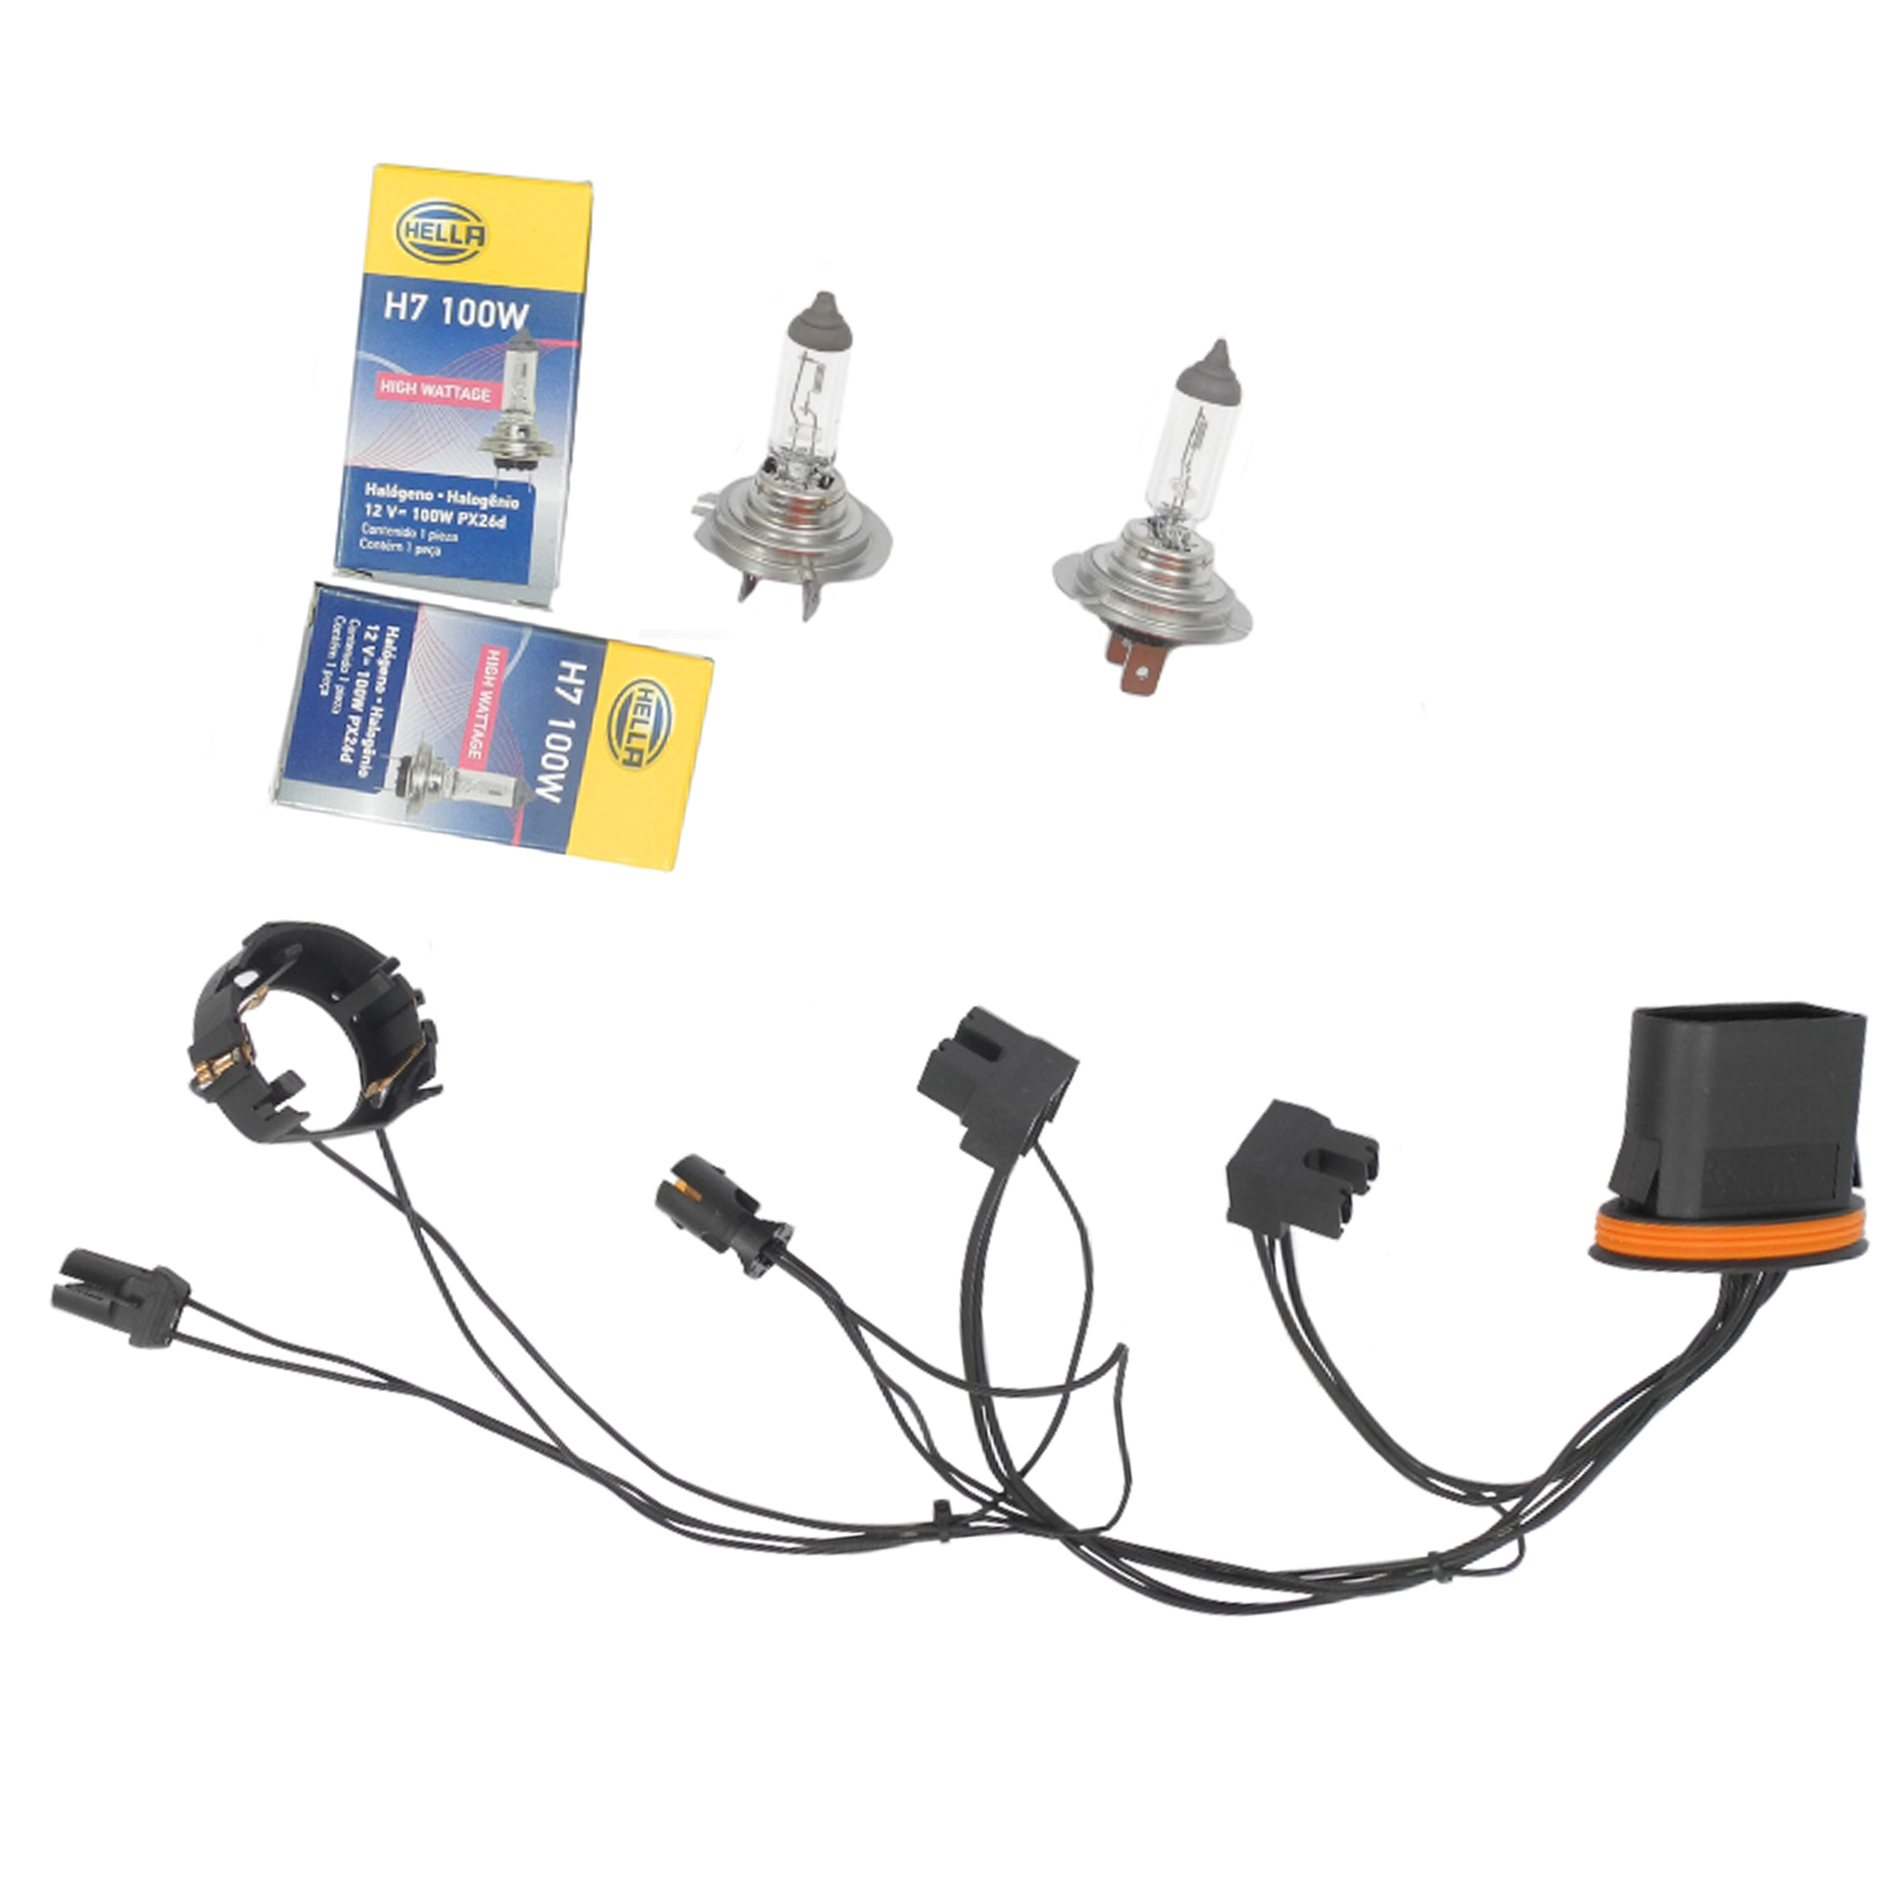 hight resolution of for benz c230 c250 left right headlight wiring harness headlight bulb h7 100w